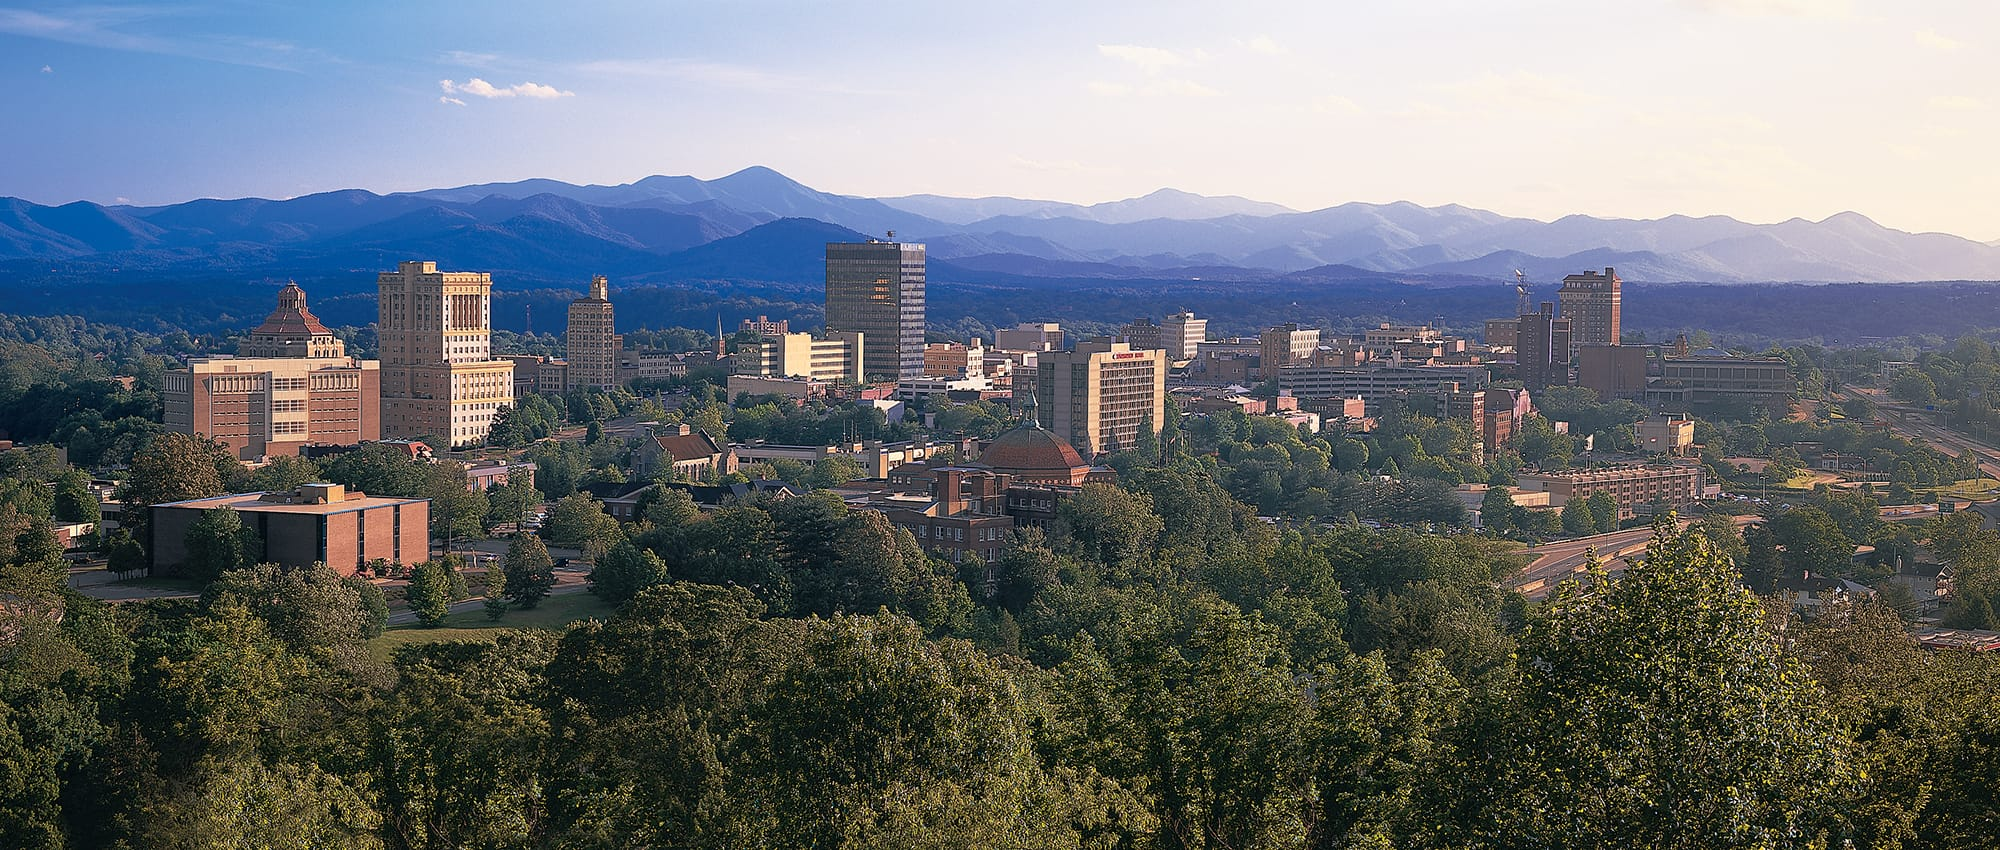 The Asheville skyline